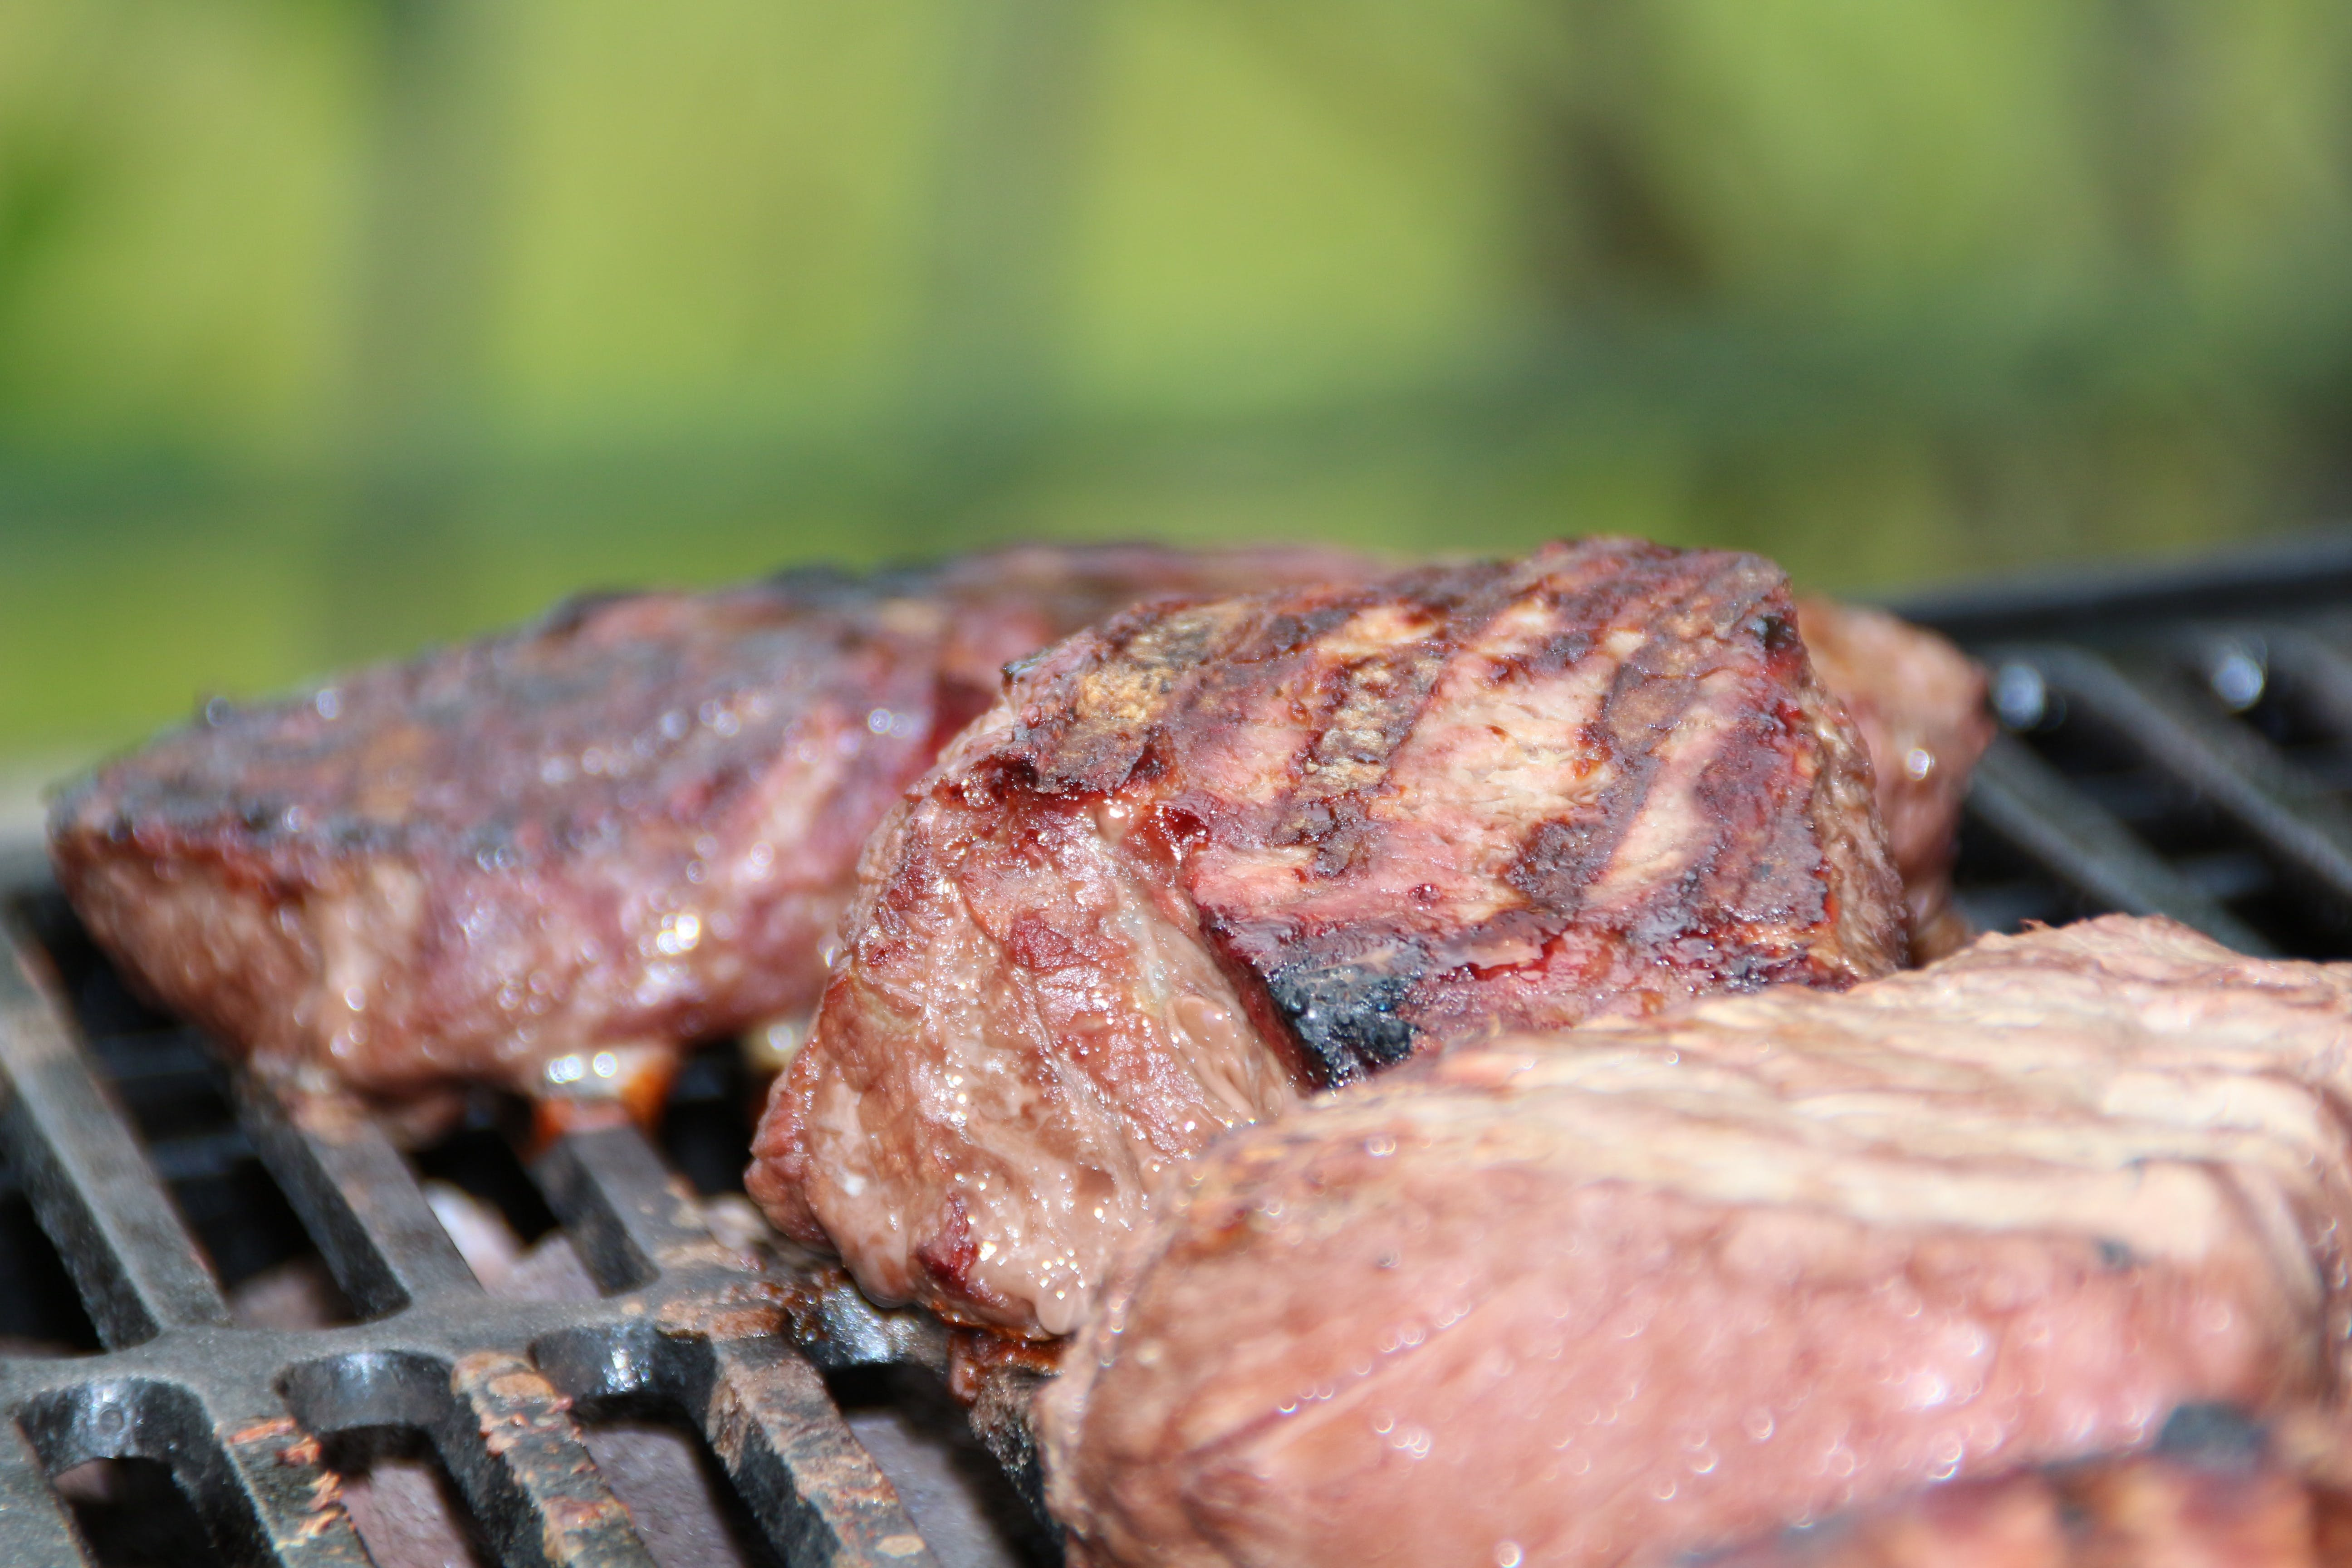 Grilled Meat during Daytime